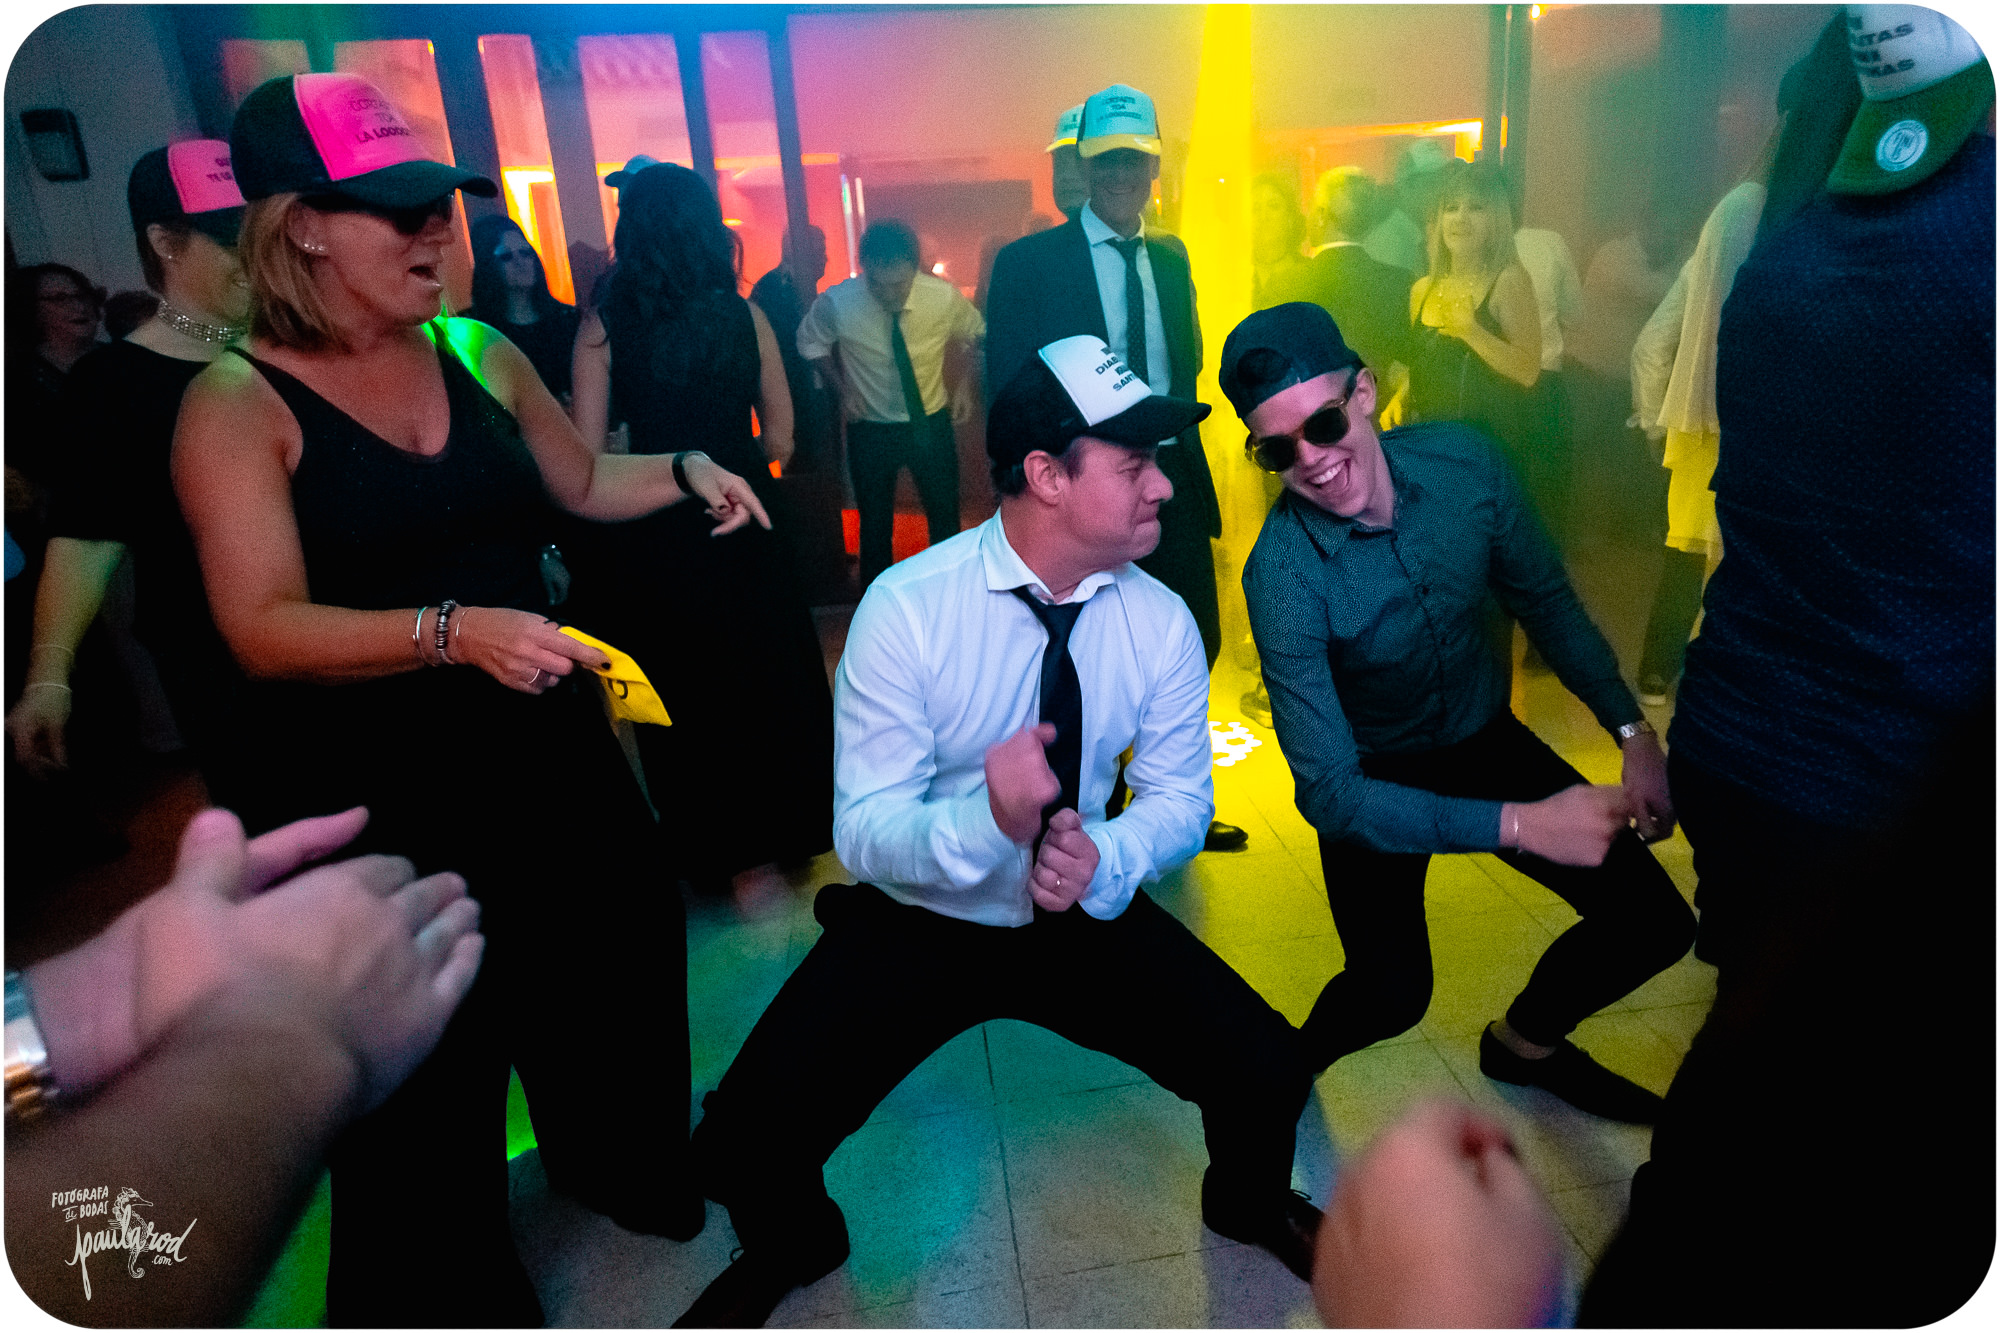 fotografia_documental_para_quinces_en_haedo-2 (9).jpg